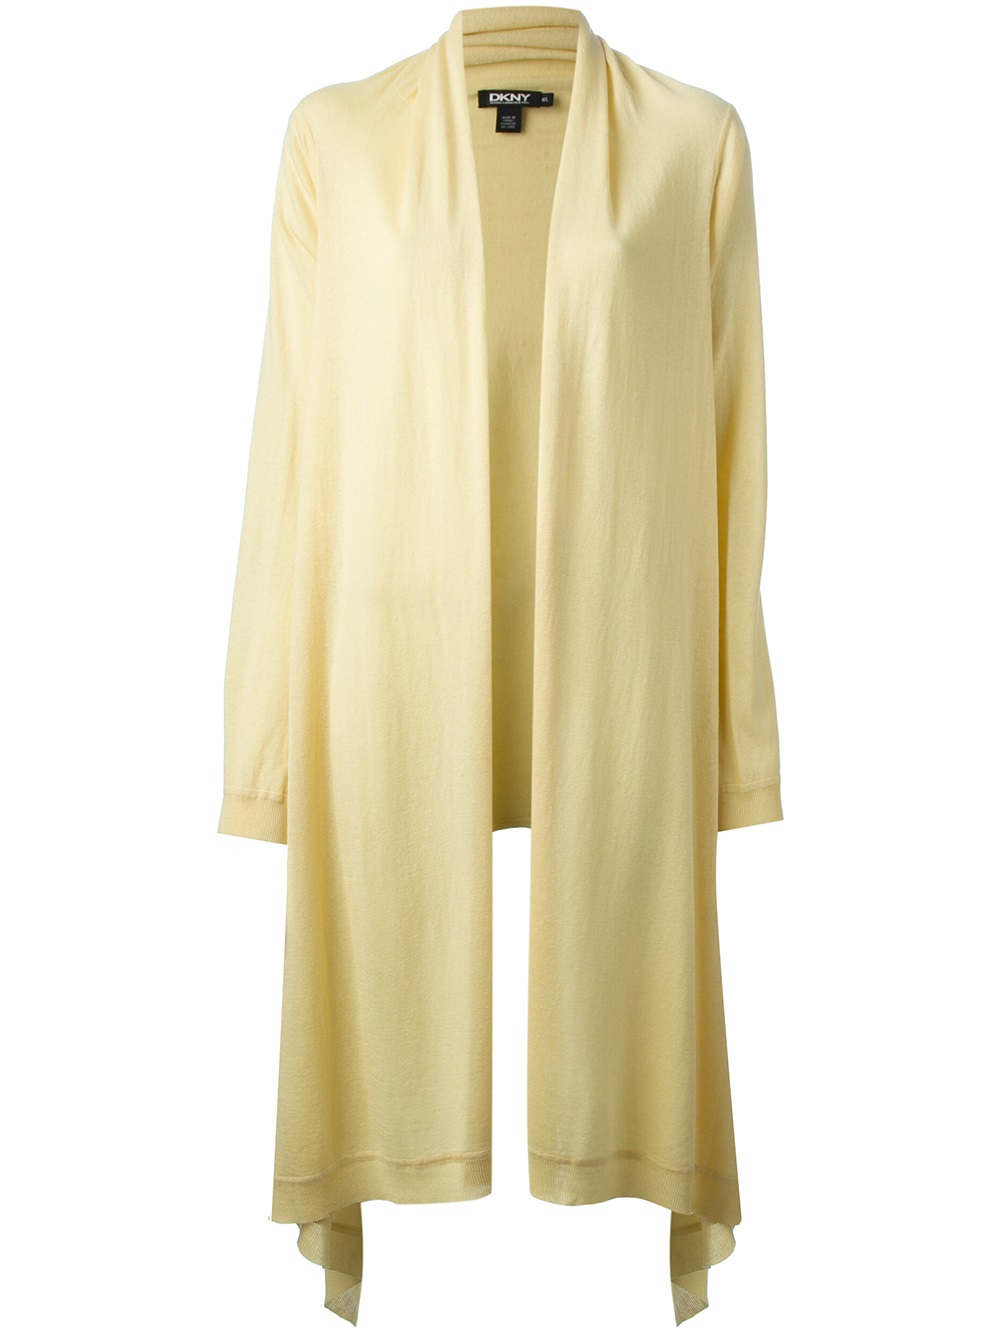 Dkny Draped Open Front Cardigan in Yellow | Lyst